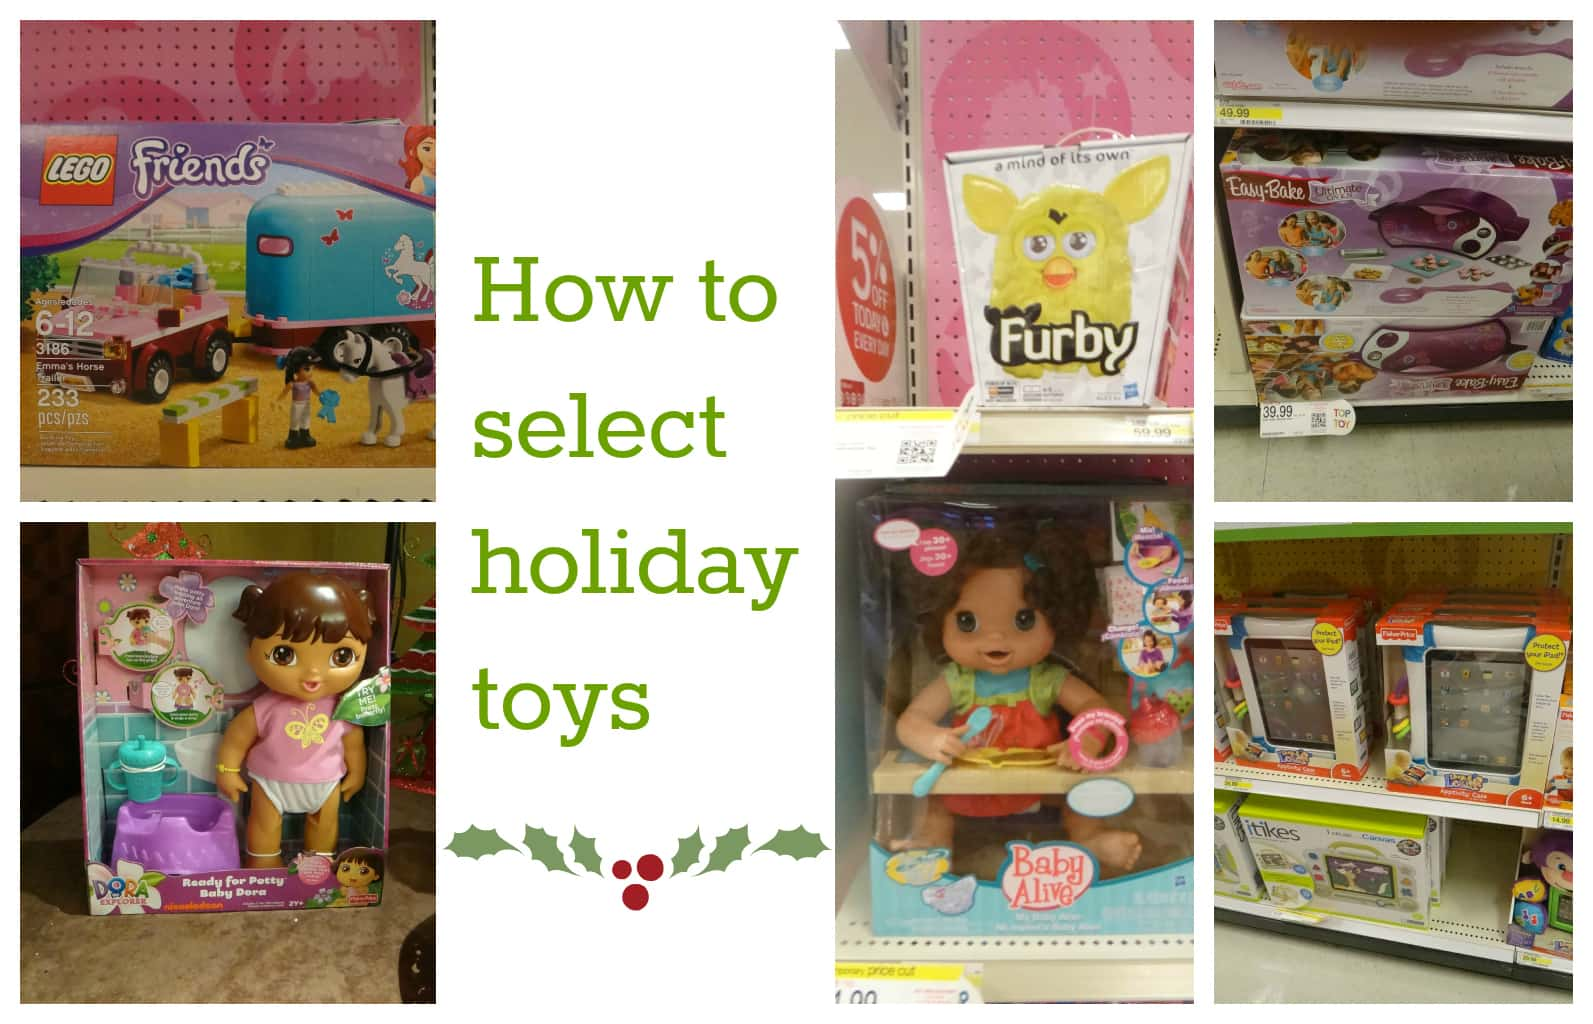 Tips for parents to choose holiday toys